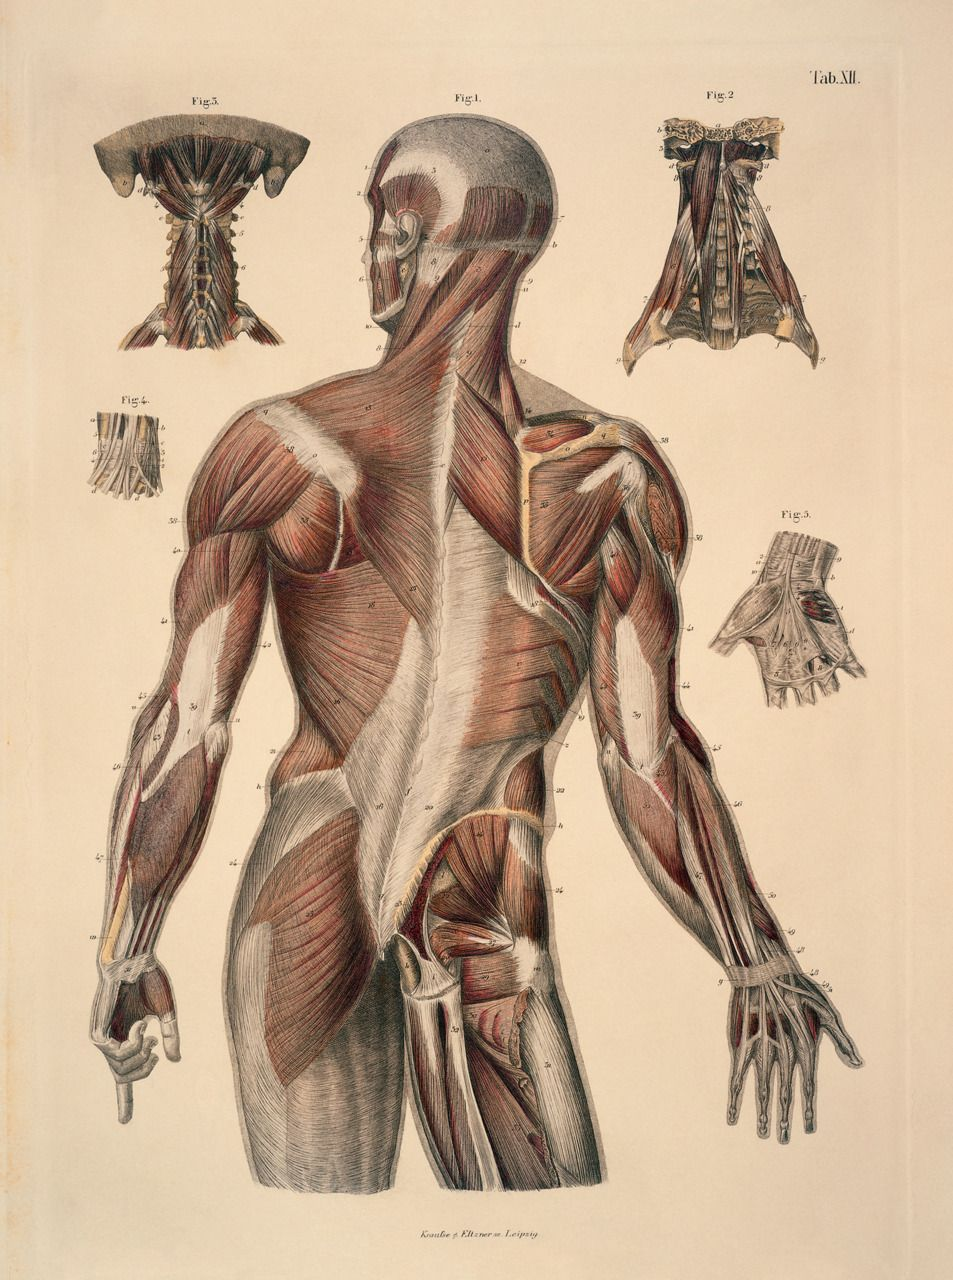 Anatomy Illustrations This Site Has A Ton You Got It So